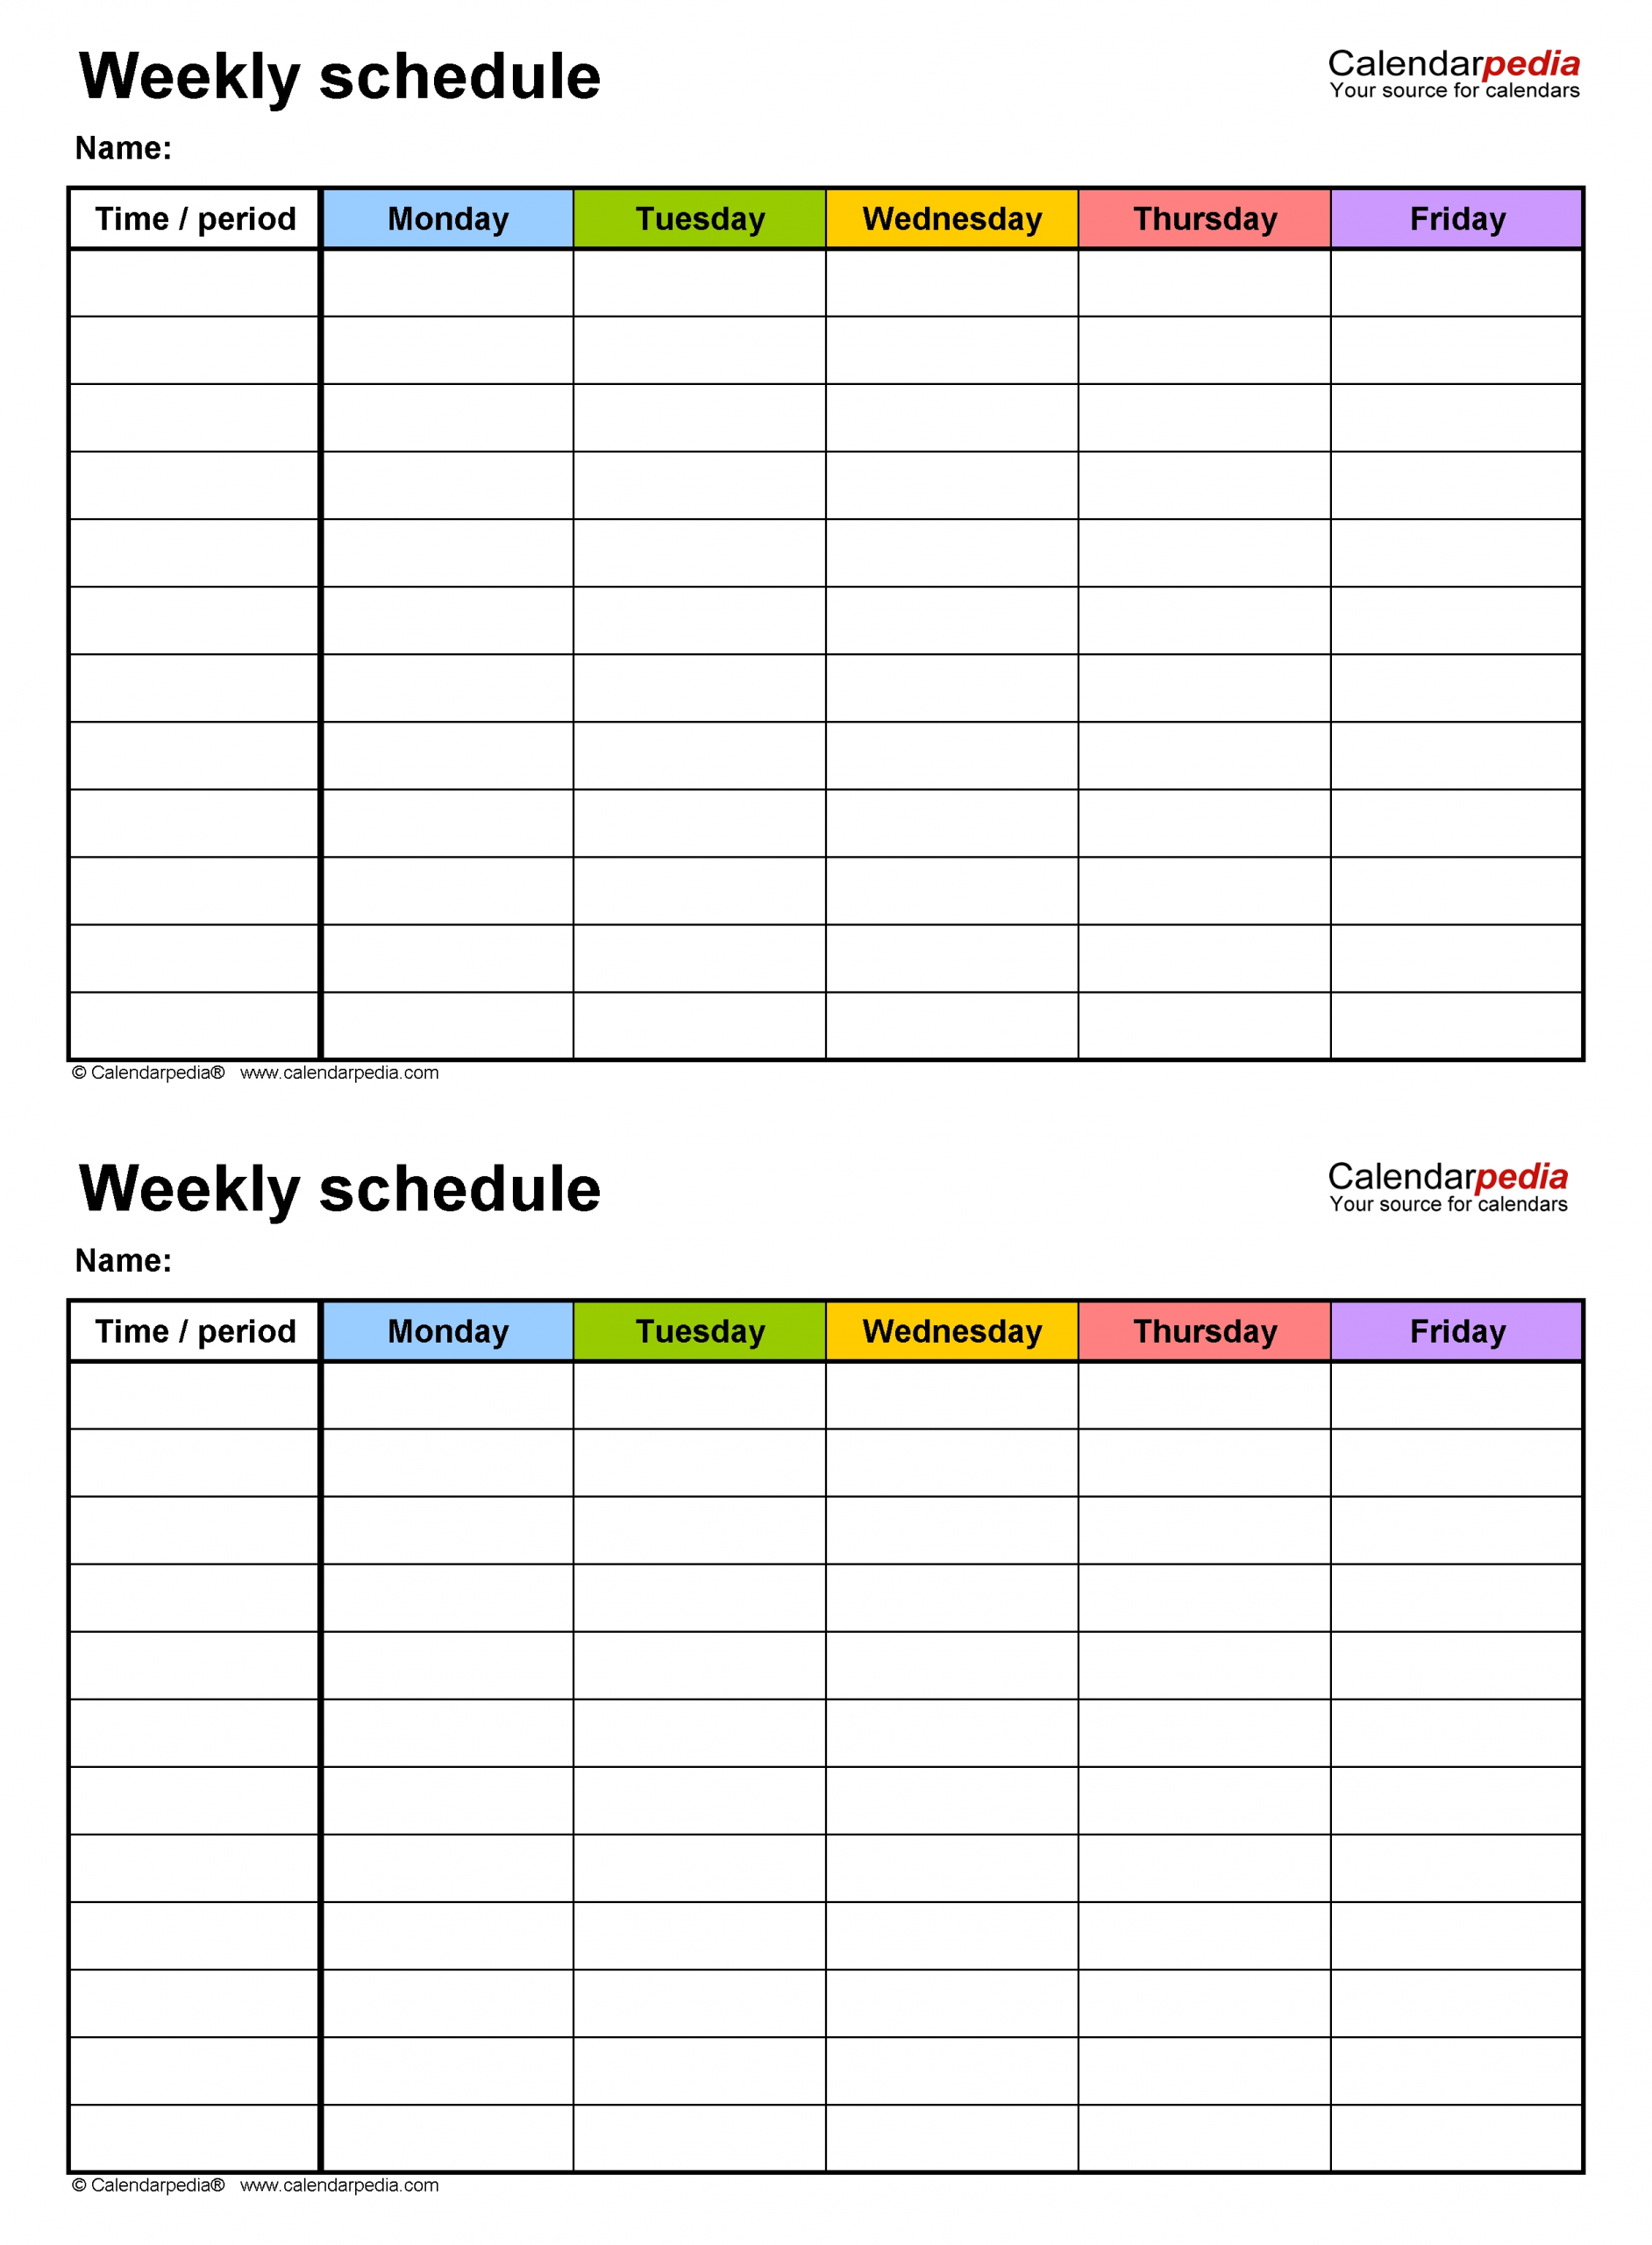 Monday To Friday Timetable Template | Calendar Template Free Printable Weekly Schedule Monday-Fridays